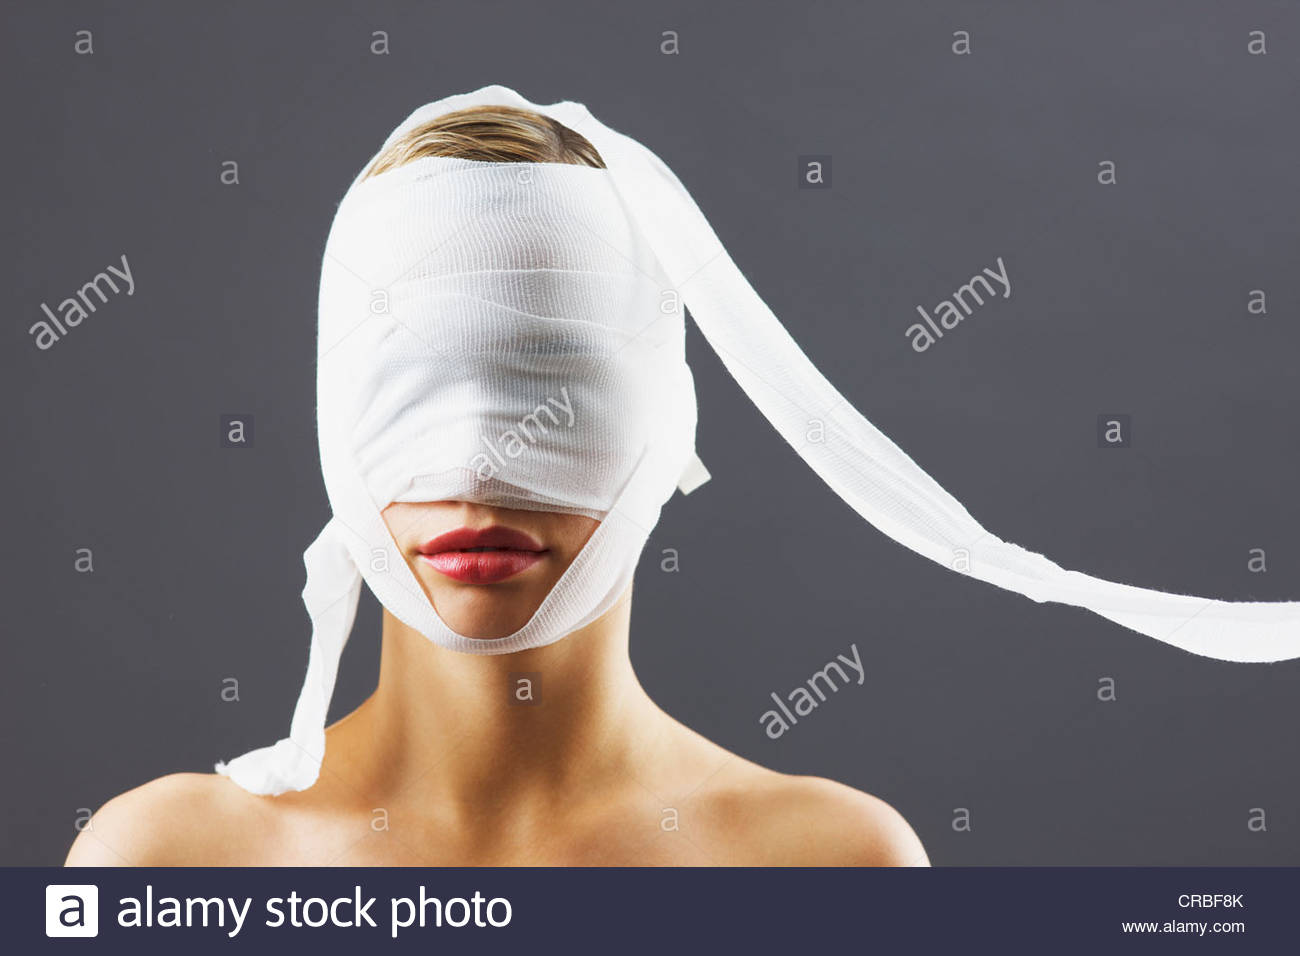 Bandage covering woman's face - Stock Image